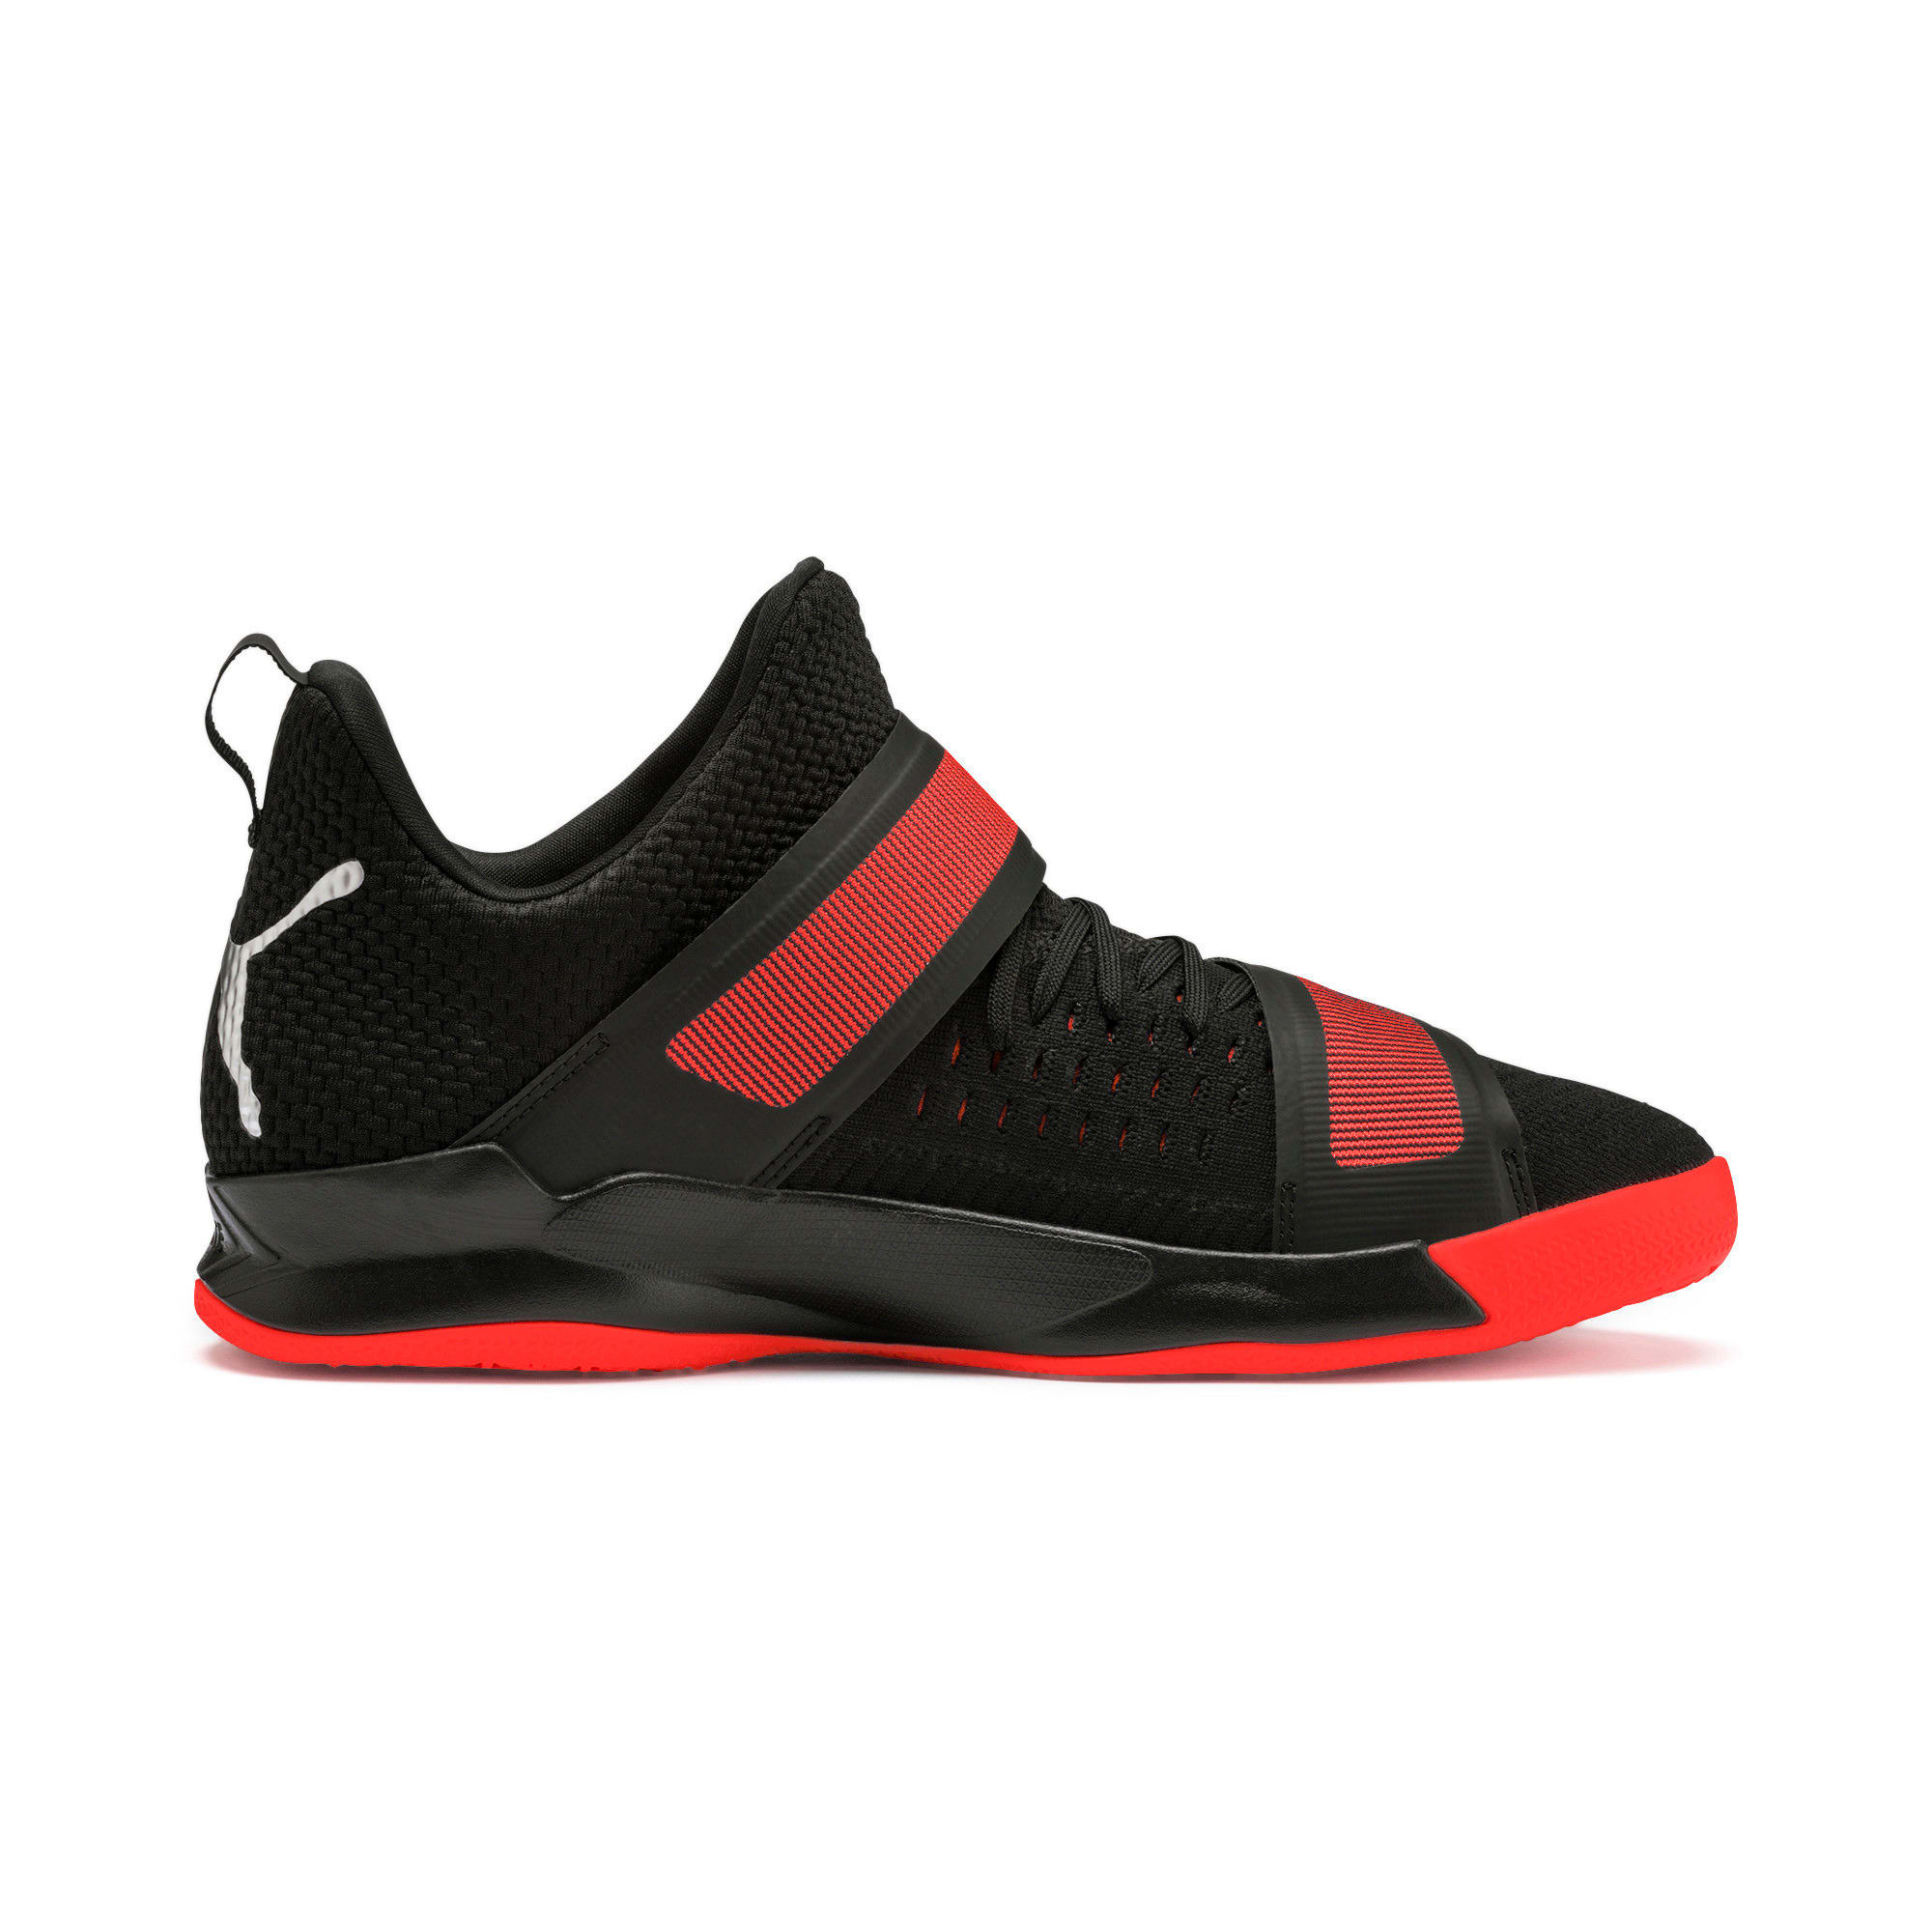 Thumbnail 6 of Basket Rise XT3 NETFIT, Puma Black-Silver-Nrgy Red, medium